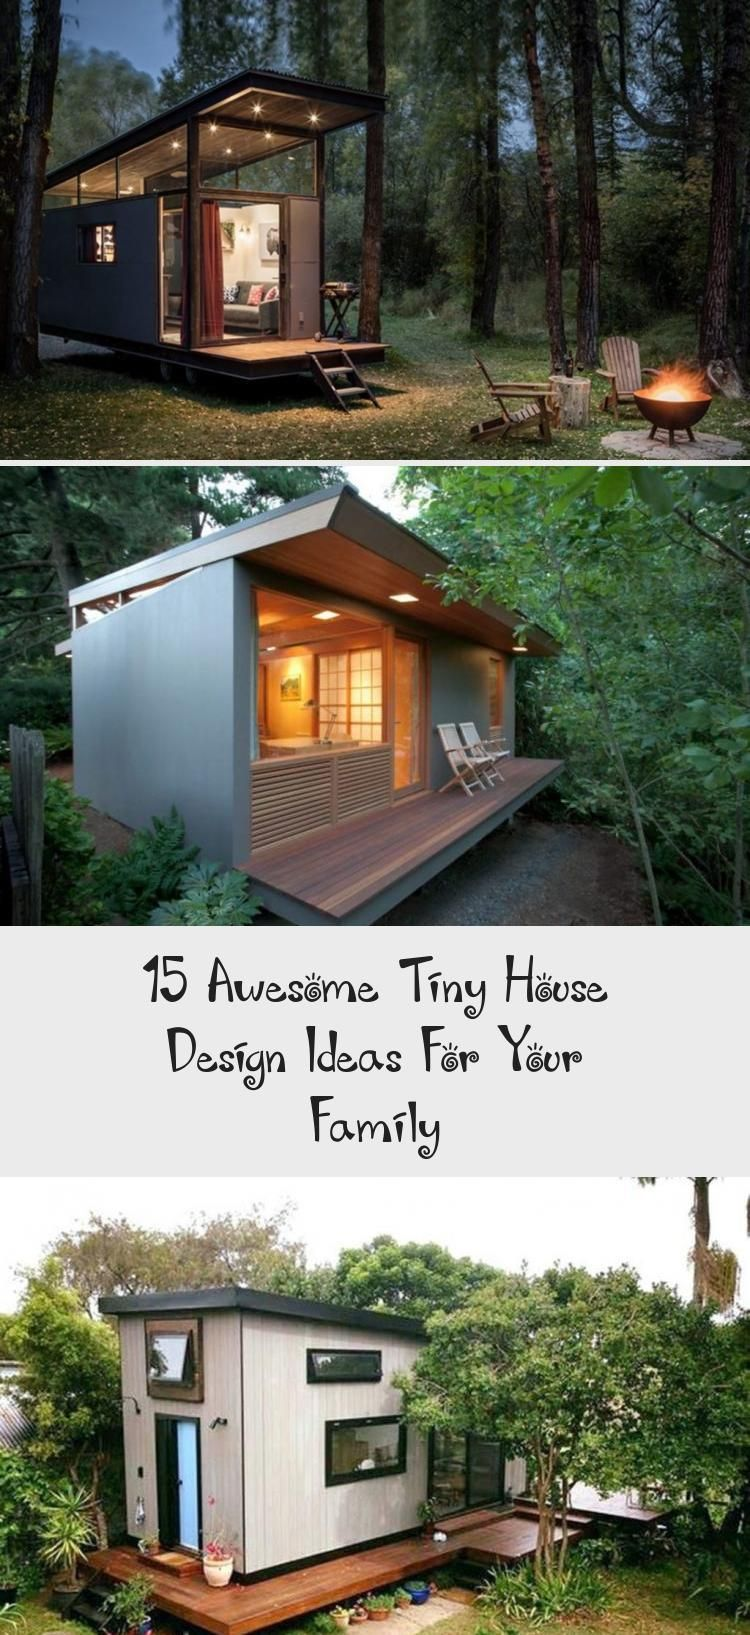 15 Awesome Tiny House Design Ideas For Your Family In 2020 Tiny House Design Tiny House Rustic House Design